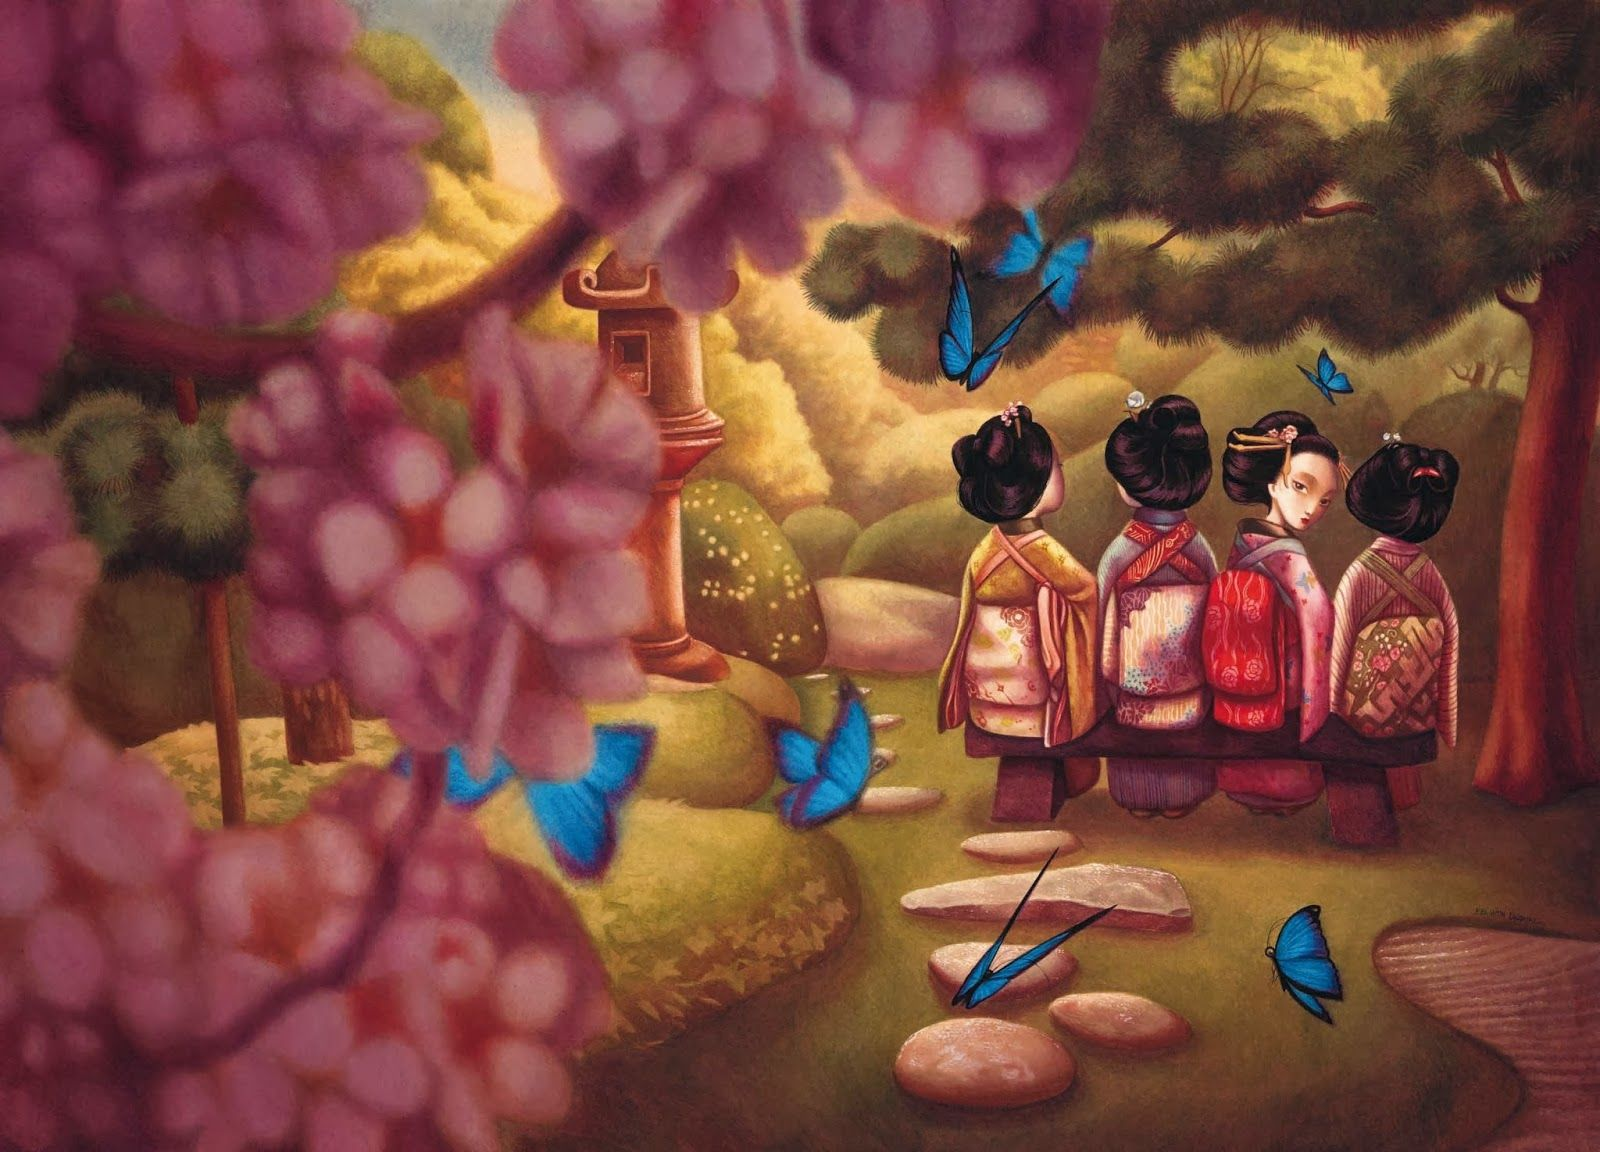 Libro Madame Butterfly Benjamin Lacombe Illustration Japanese Garden